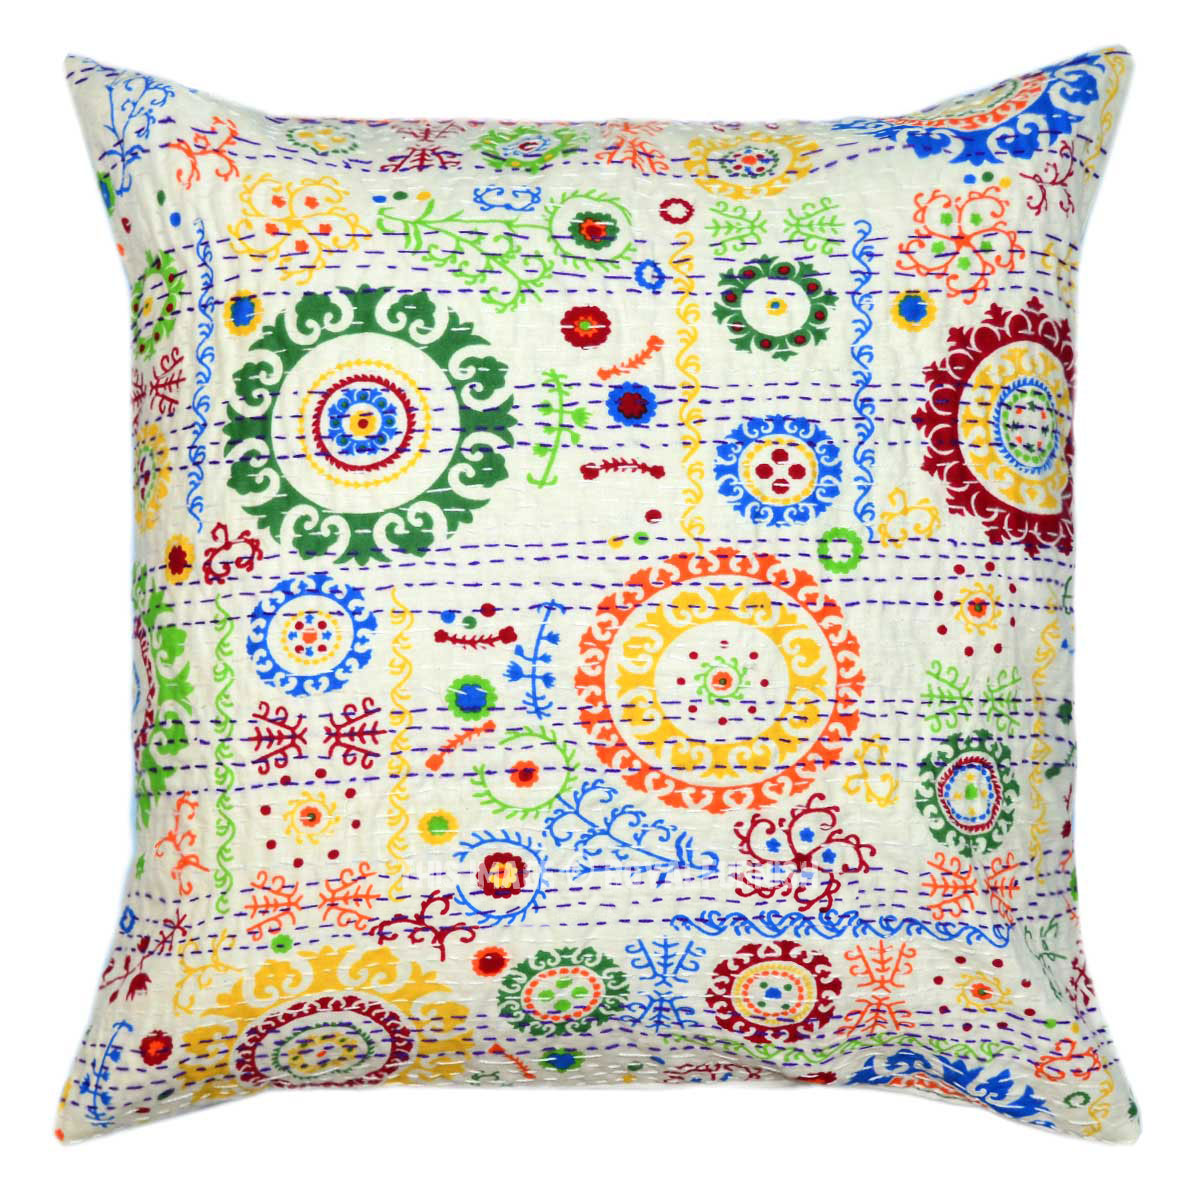 18x18 white decorative multi round circle cotton throw pillow cover. Black Bedroom Furniture Sets. Home Design Ideas